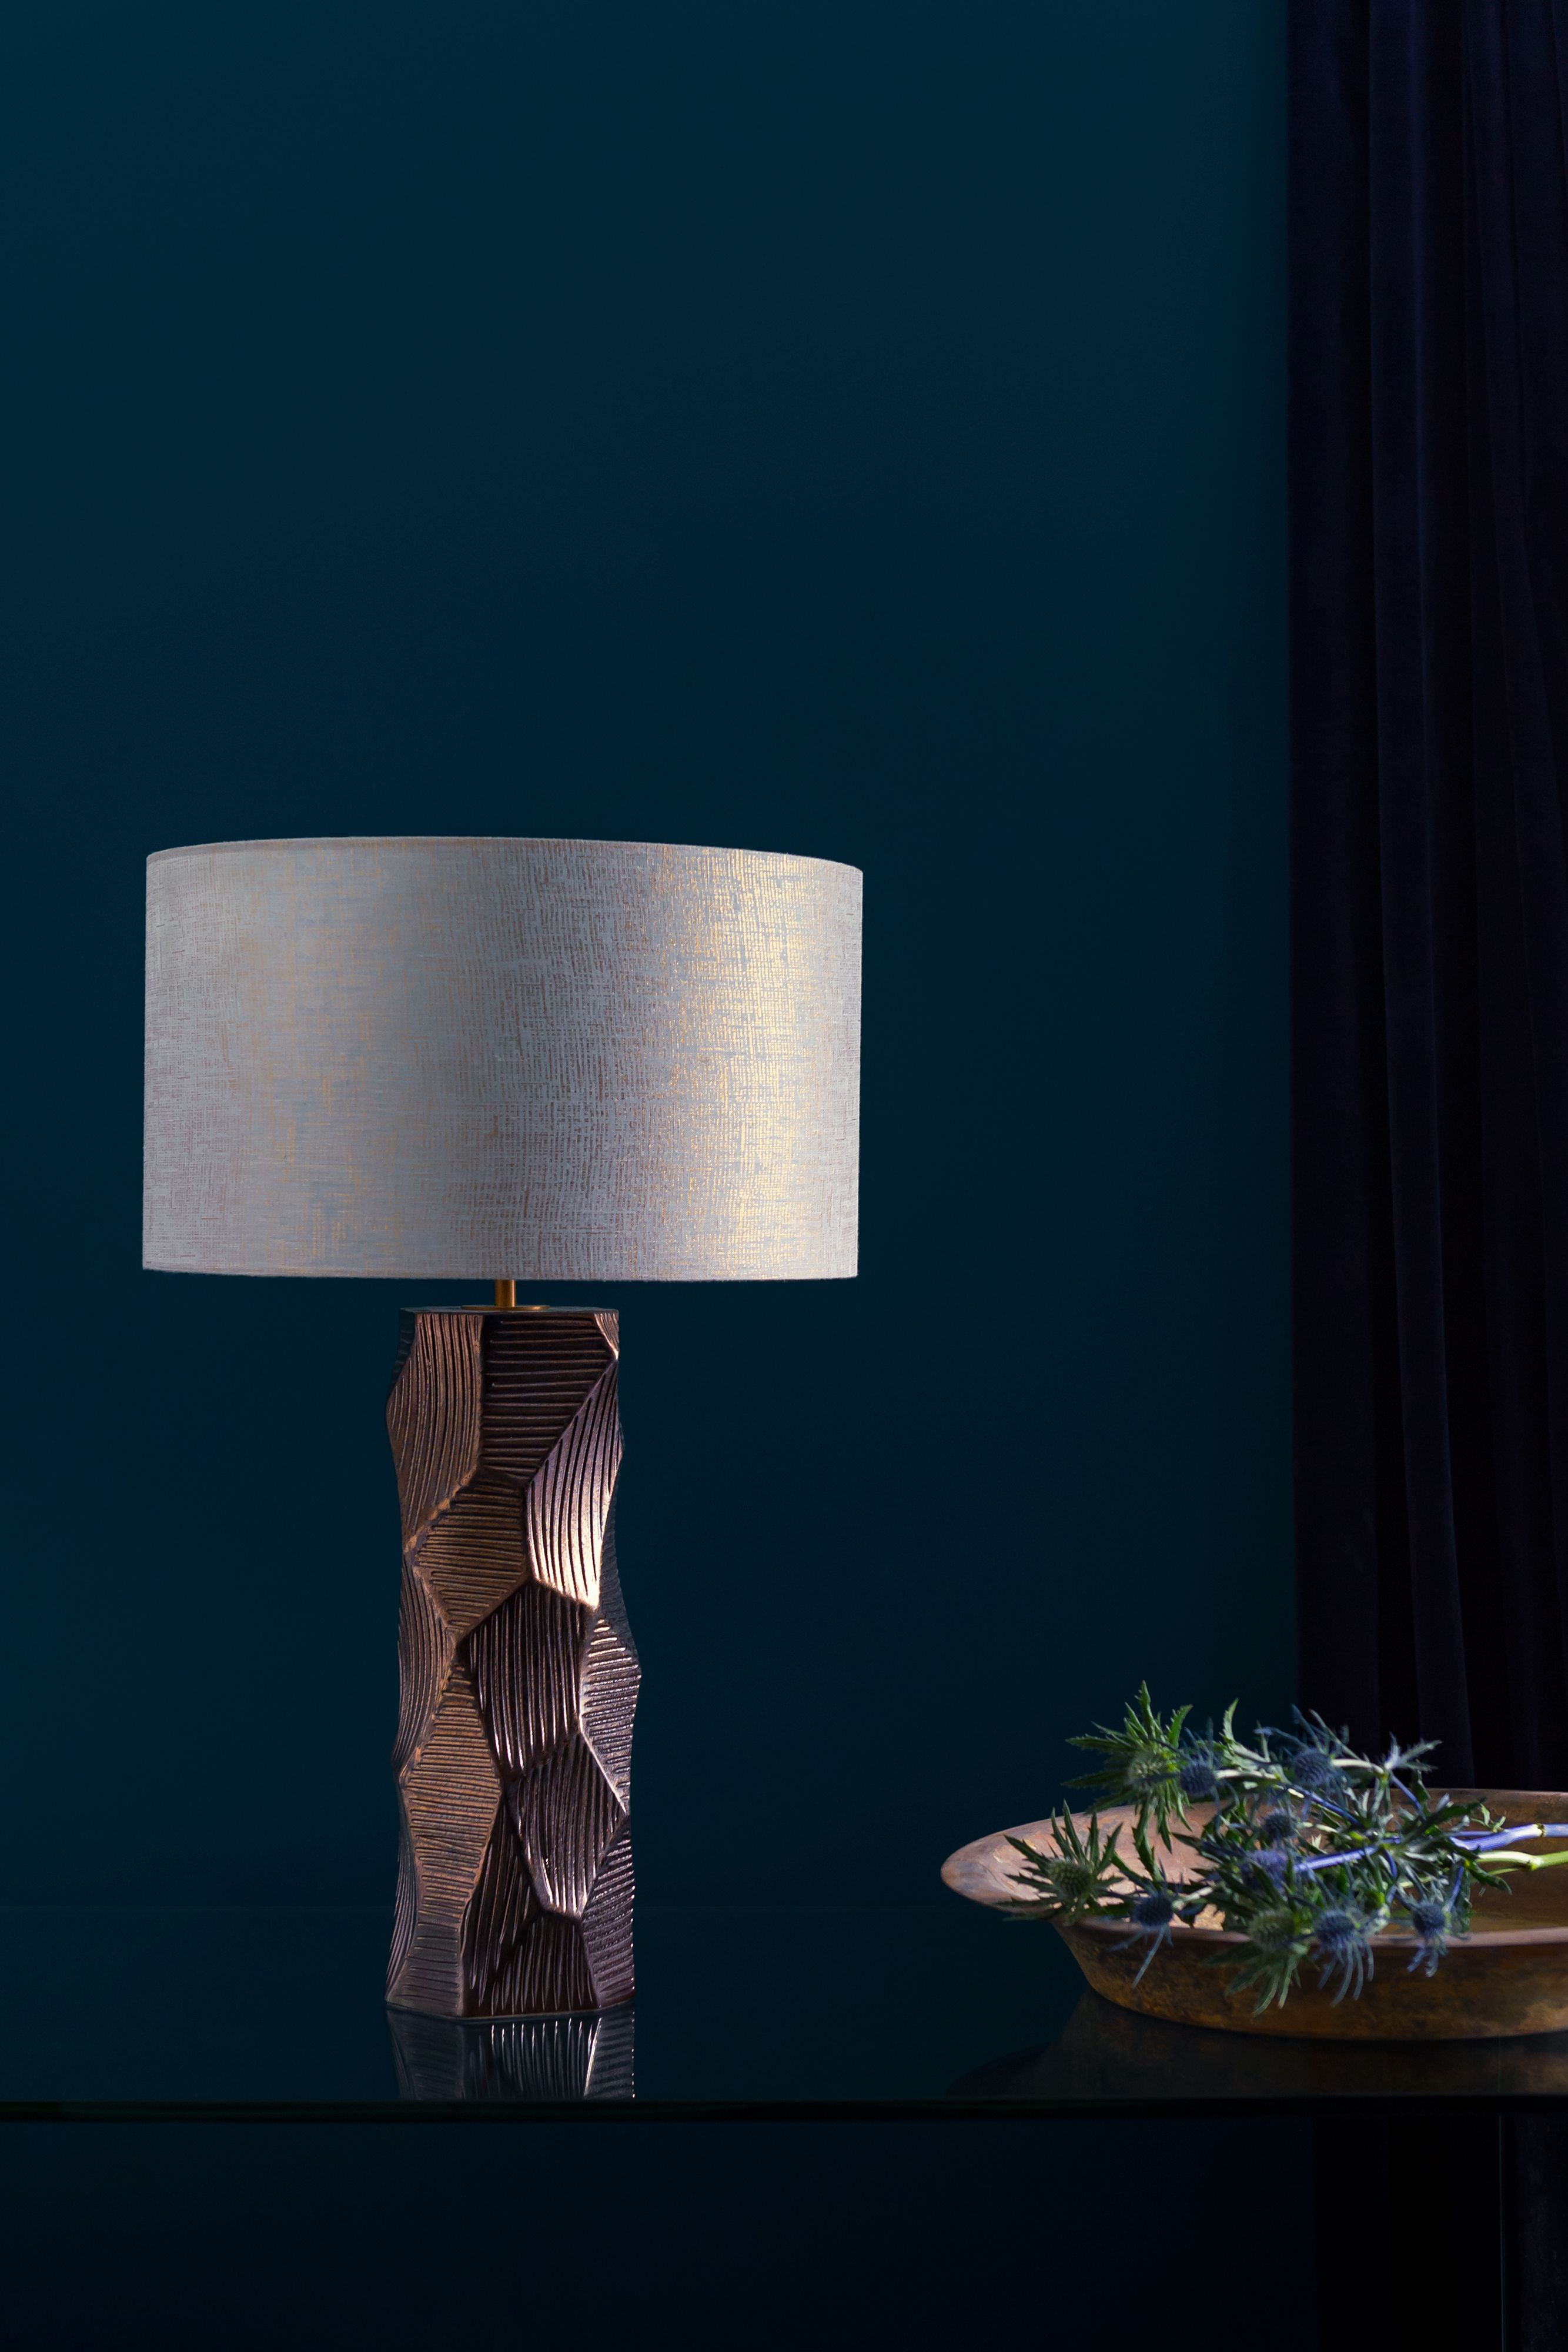 Lamp Lamps Http Www Instyle Decor Com Table Lamps Html